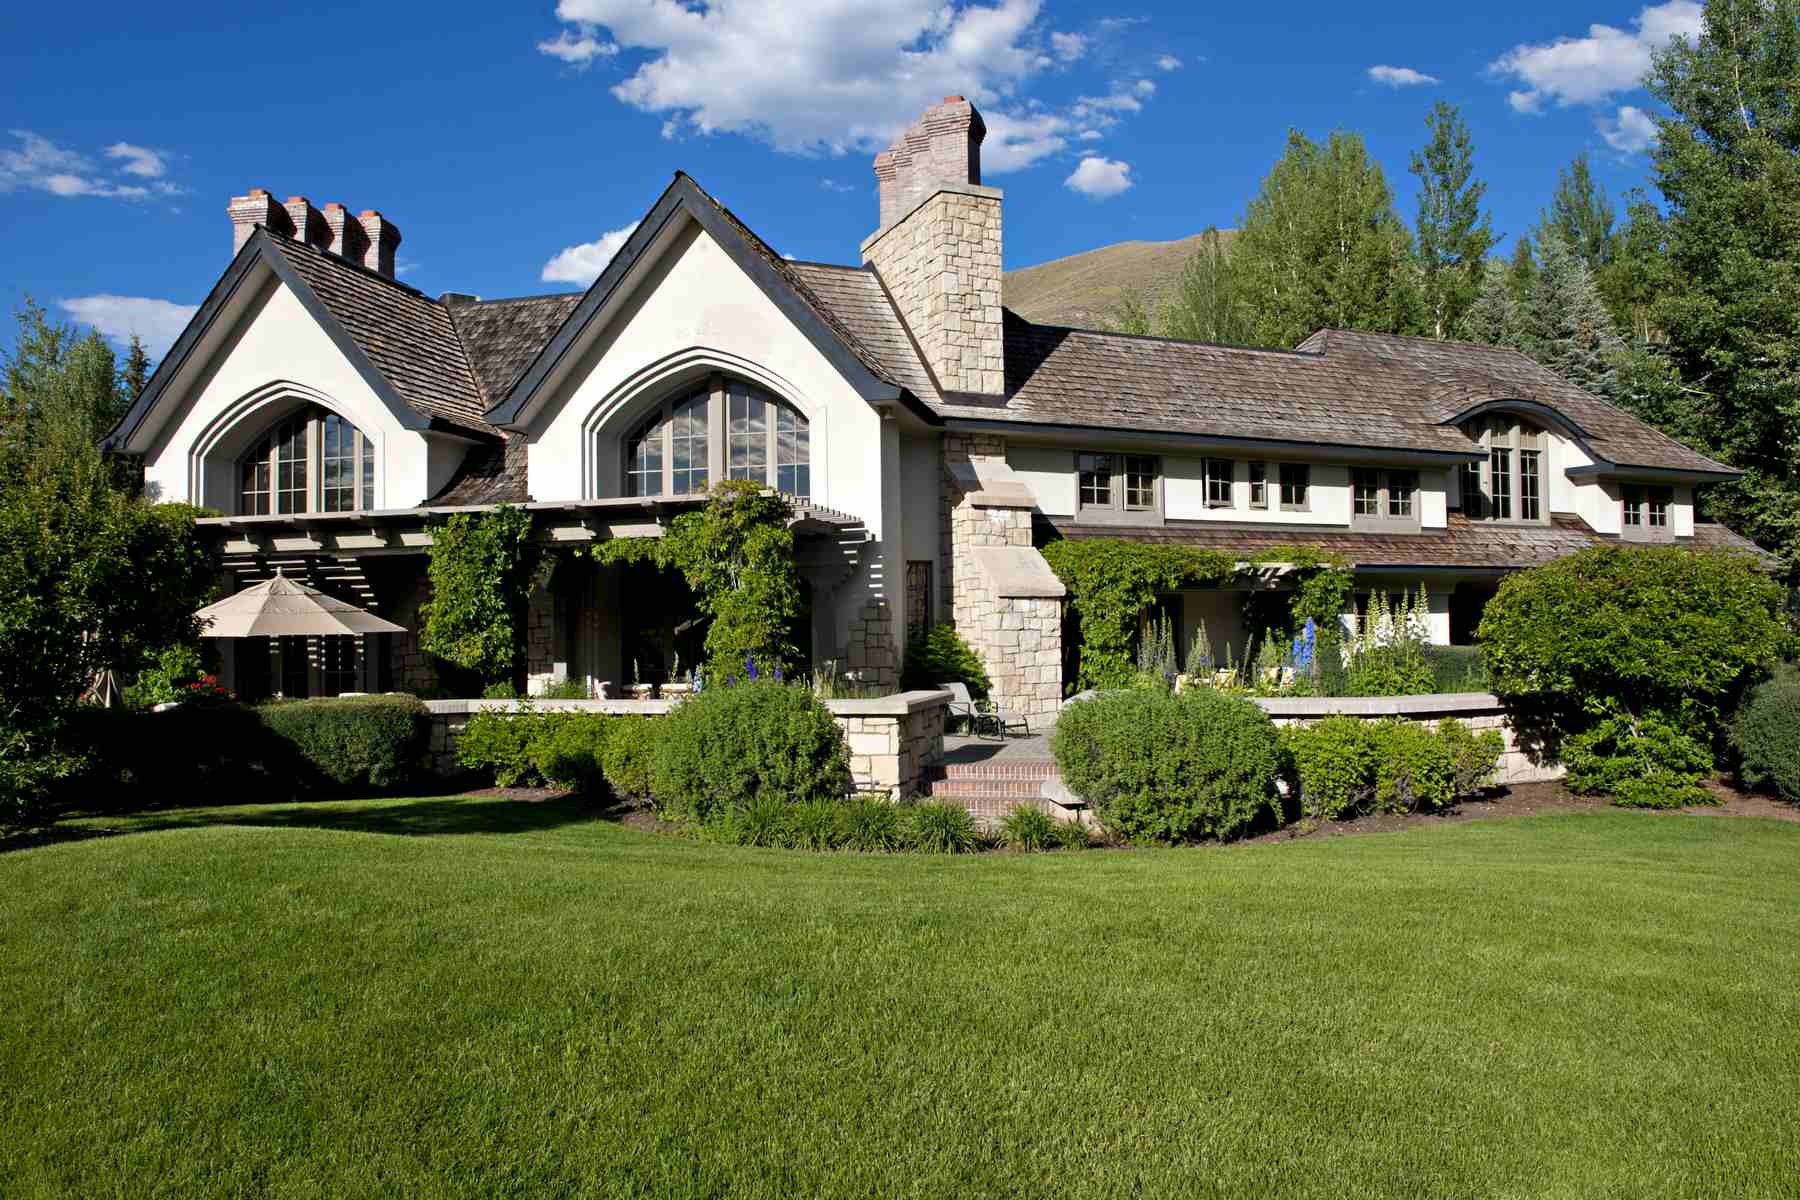 Single Family Home for Sale at Elegant English Country Manor 101 Wedeln Sun Valley, Idaho 83340 United States